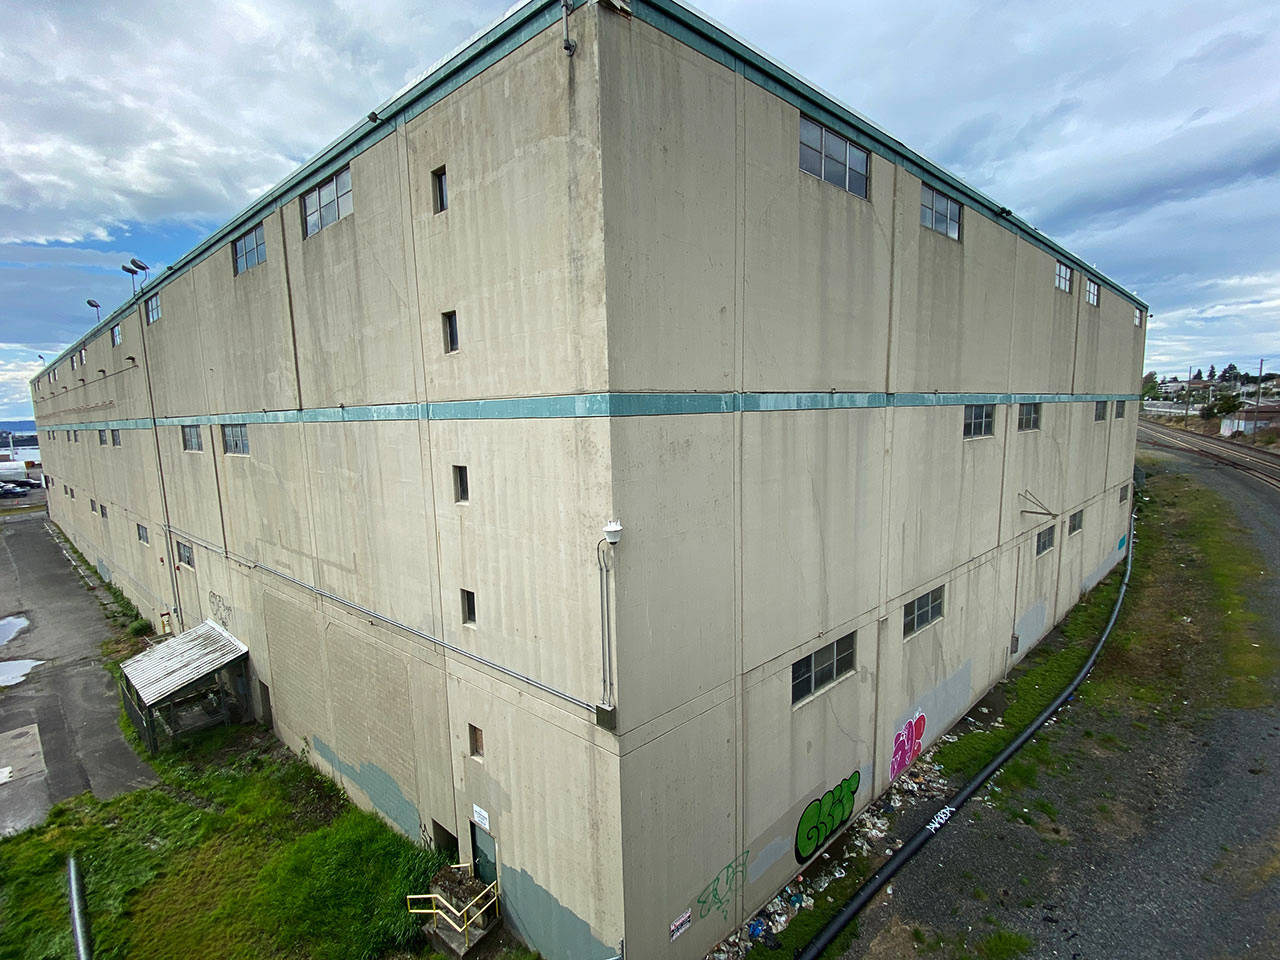 The old Kimberly-Clark warehouse on the Everett waterfront is seen April 29. (Sue Misao / The Herald)